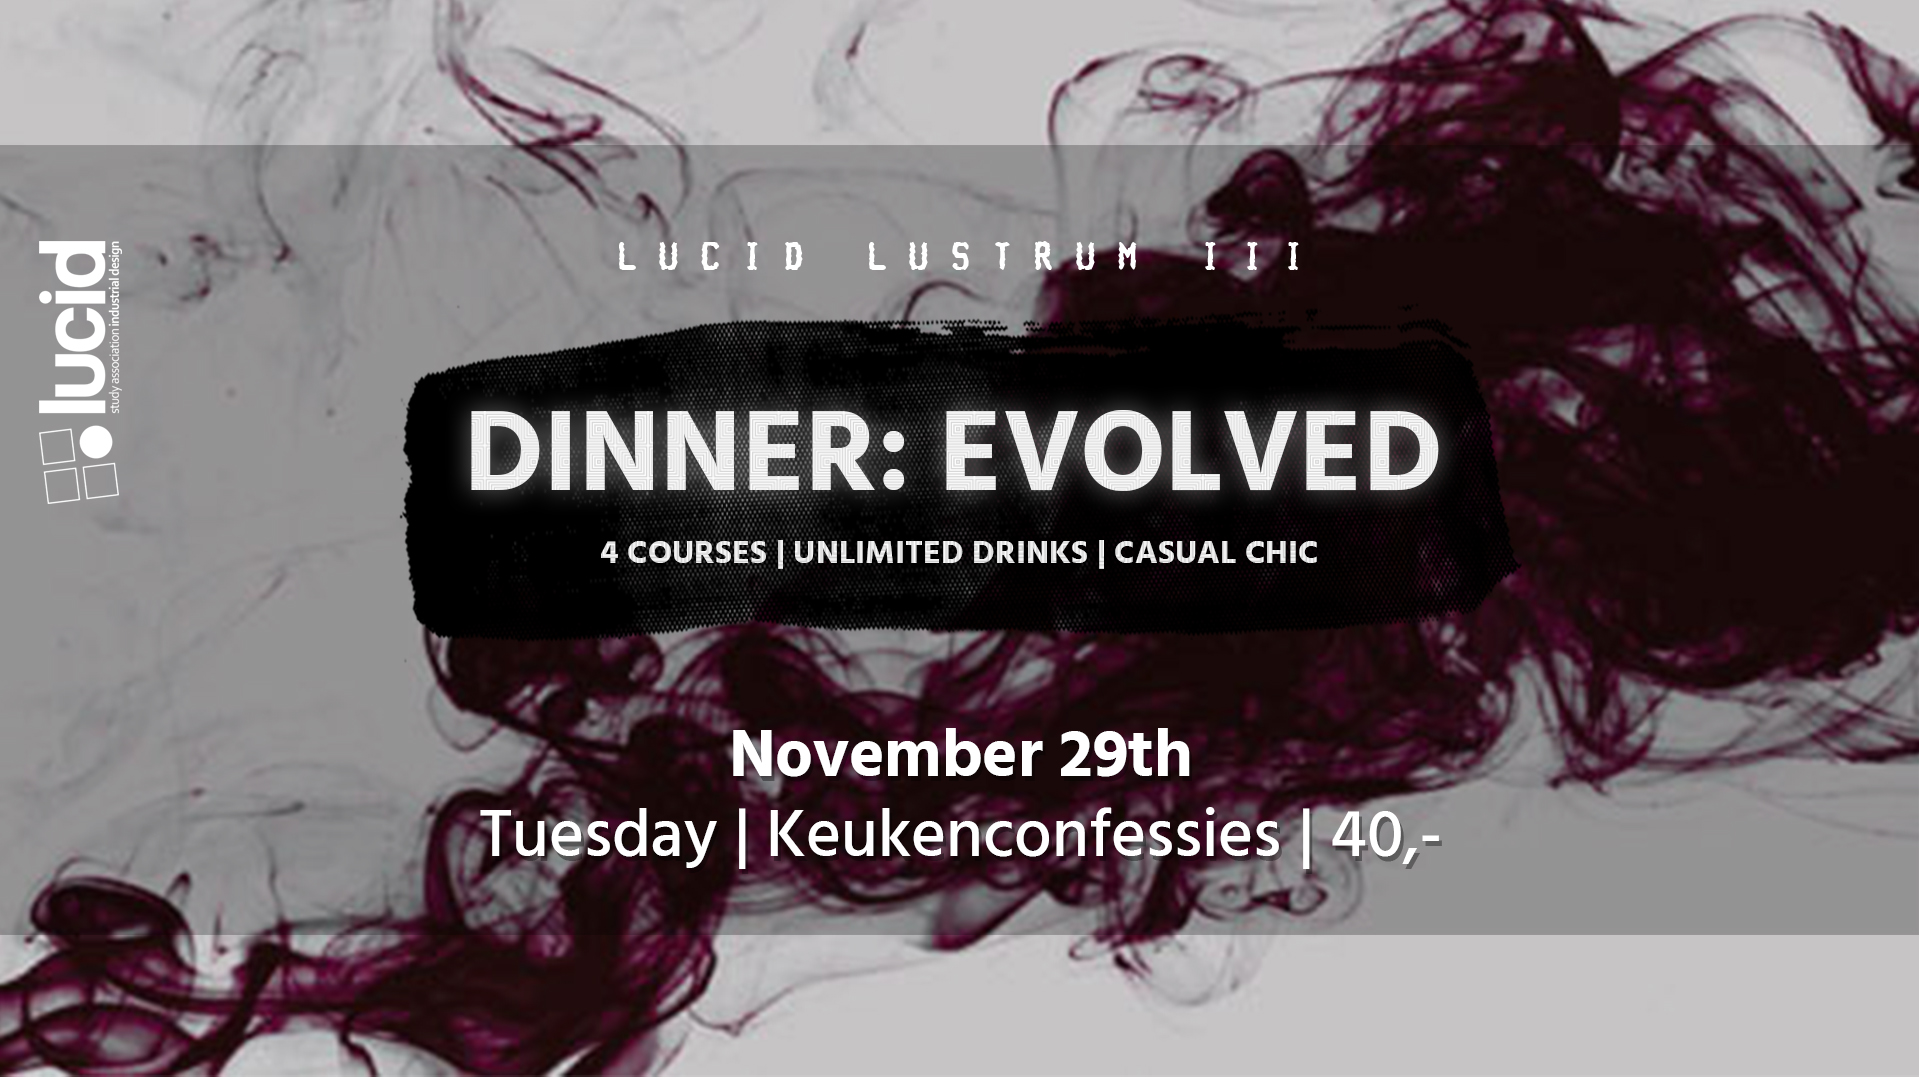 Lucid Lustrum Dinner – November 29th